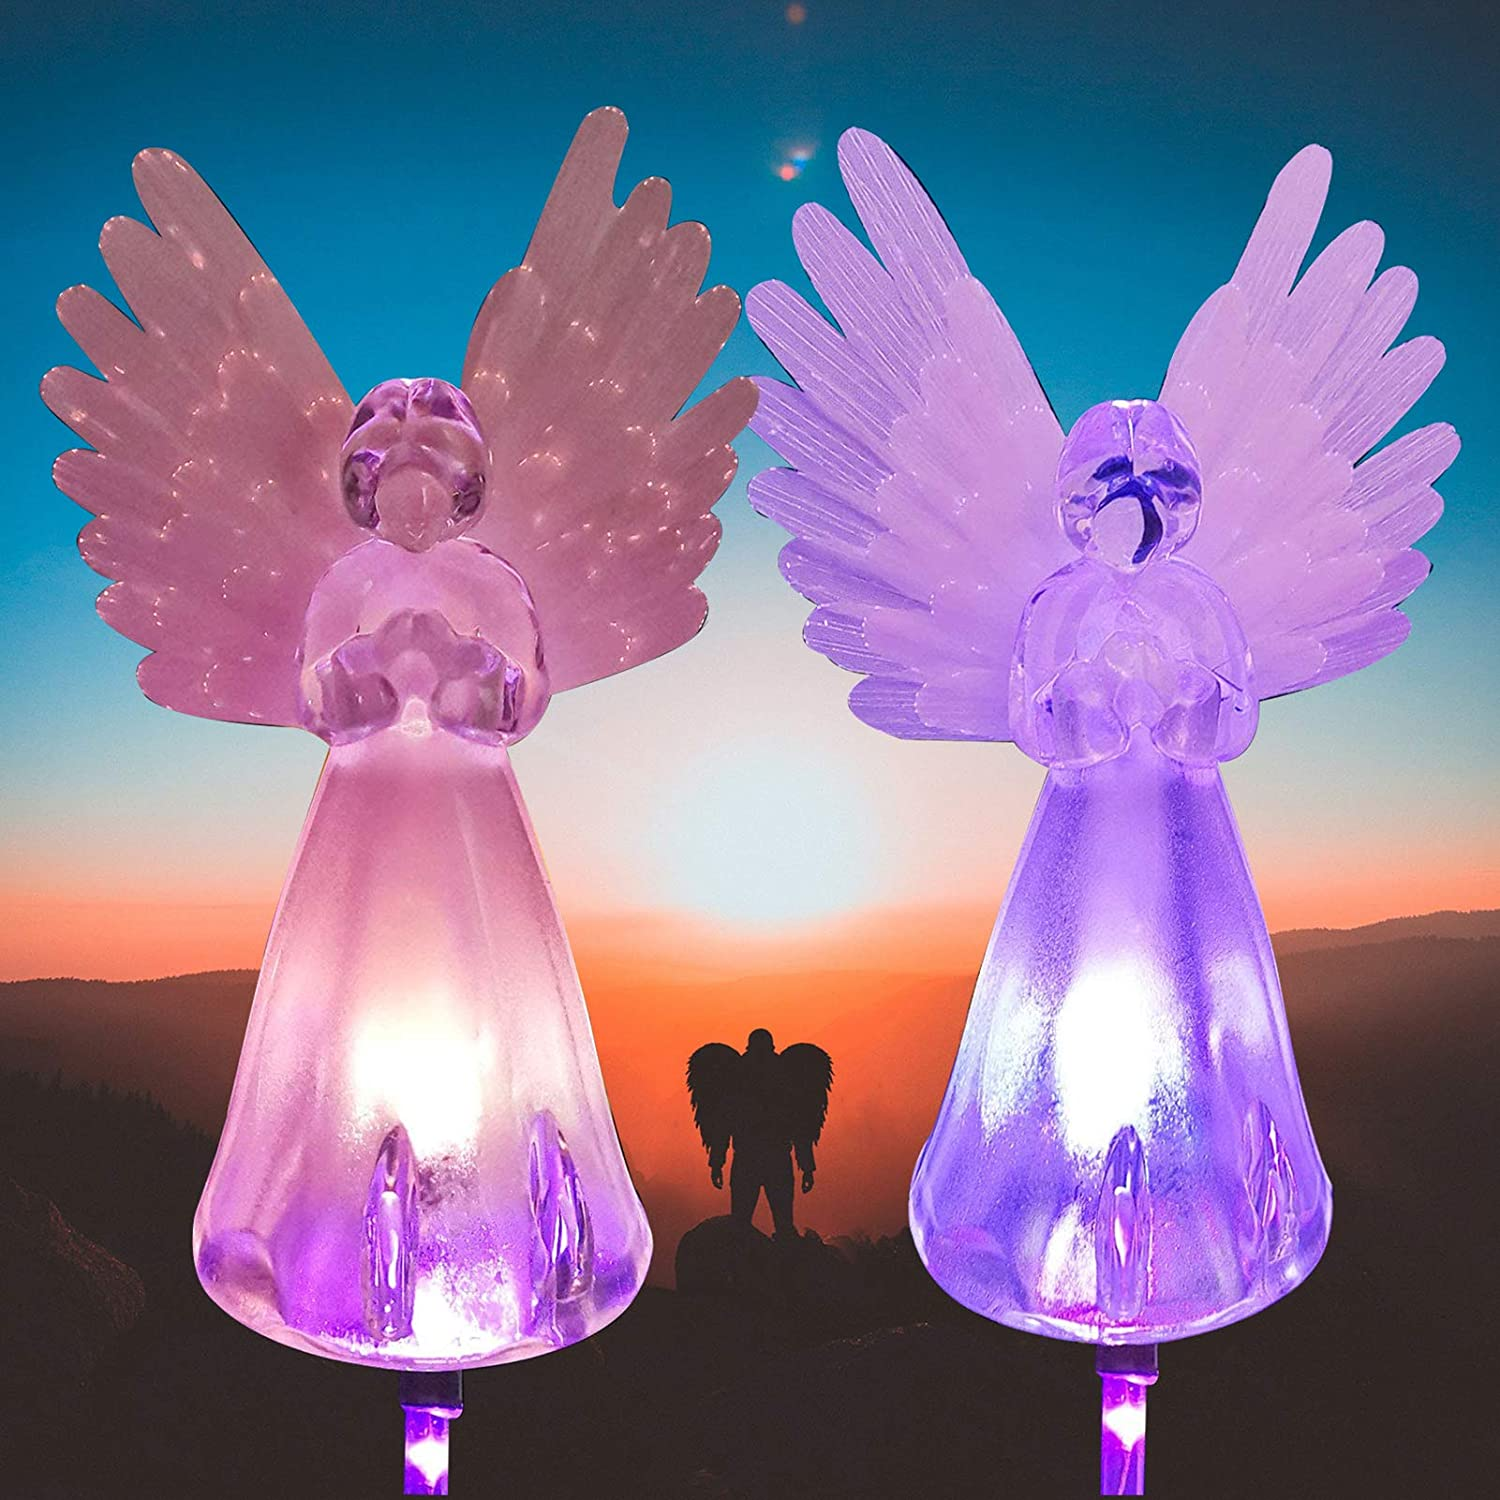 2 Pack Solar Angel Lights Outdoor, Garden Gifts for Housewarming Mom Women,Solar Powered Decorative Light for Garden Yard Patio, Grave Decorations for Cemetery